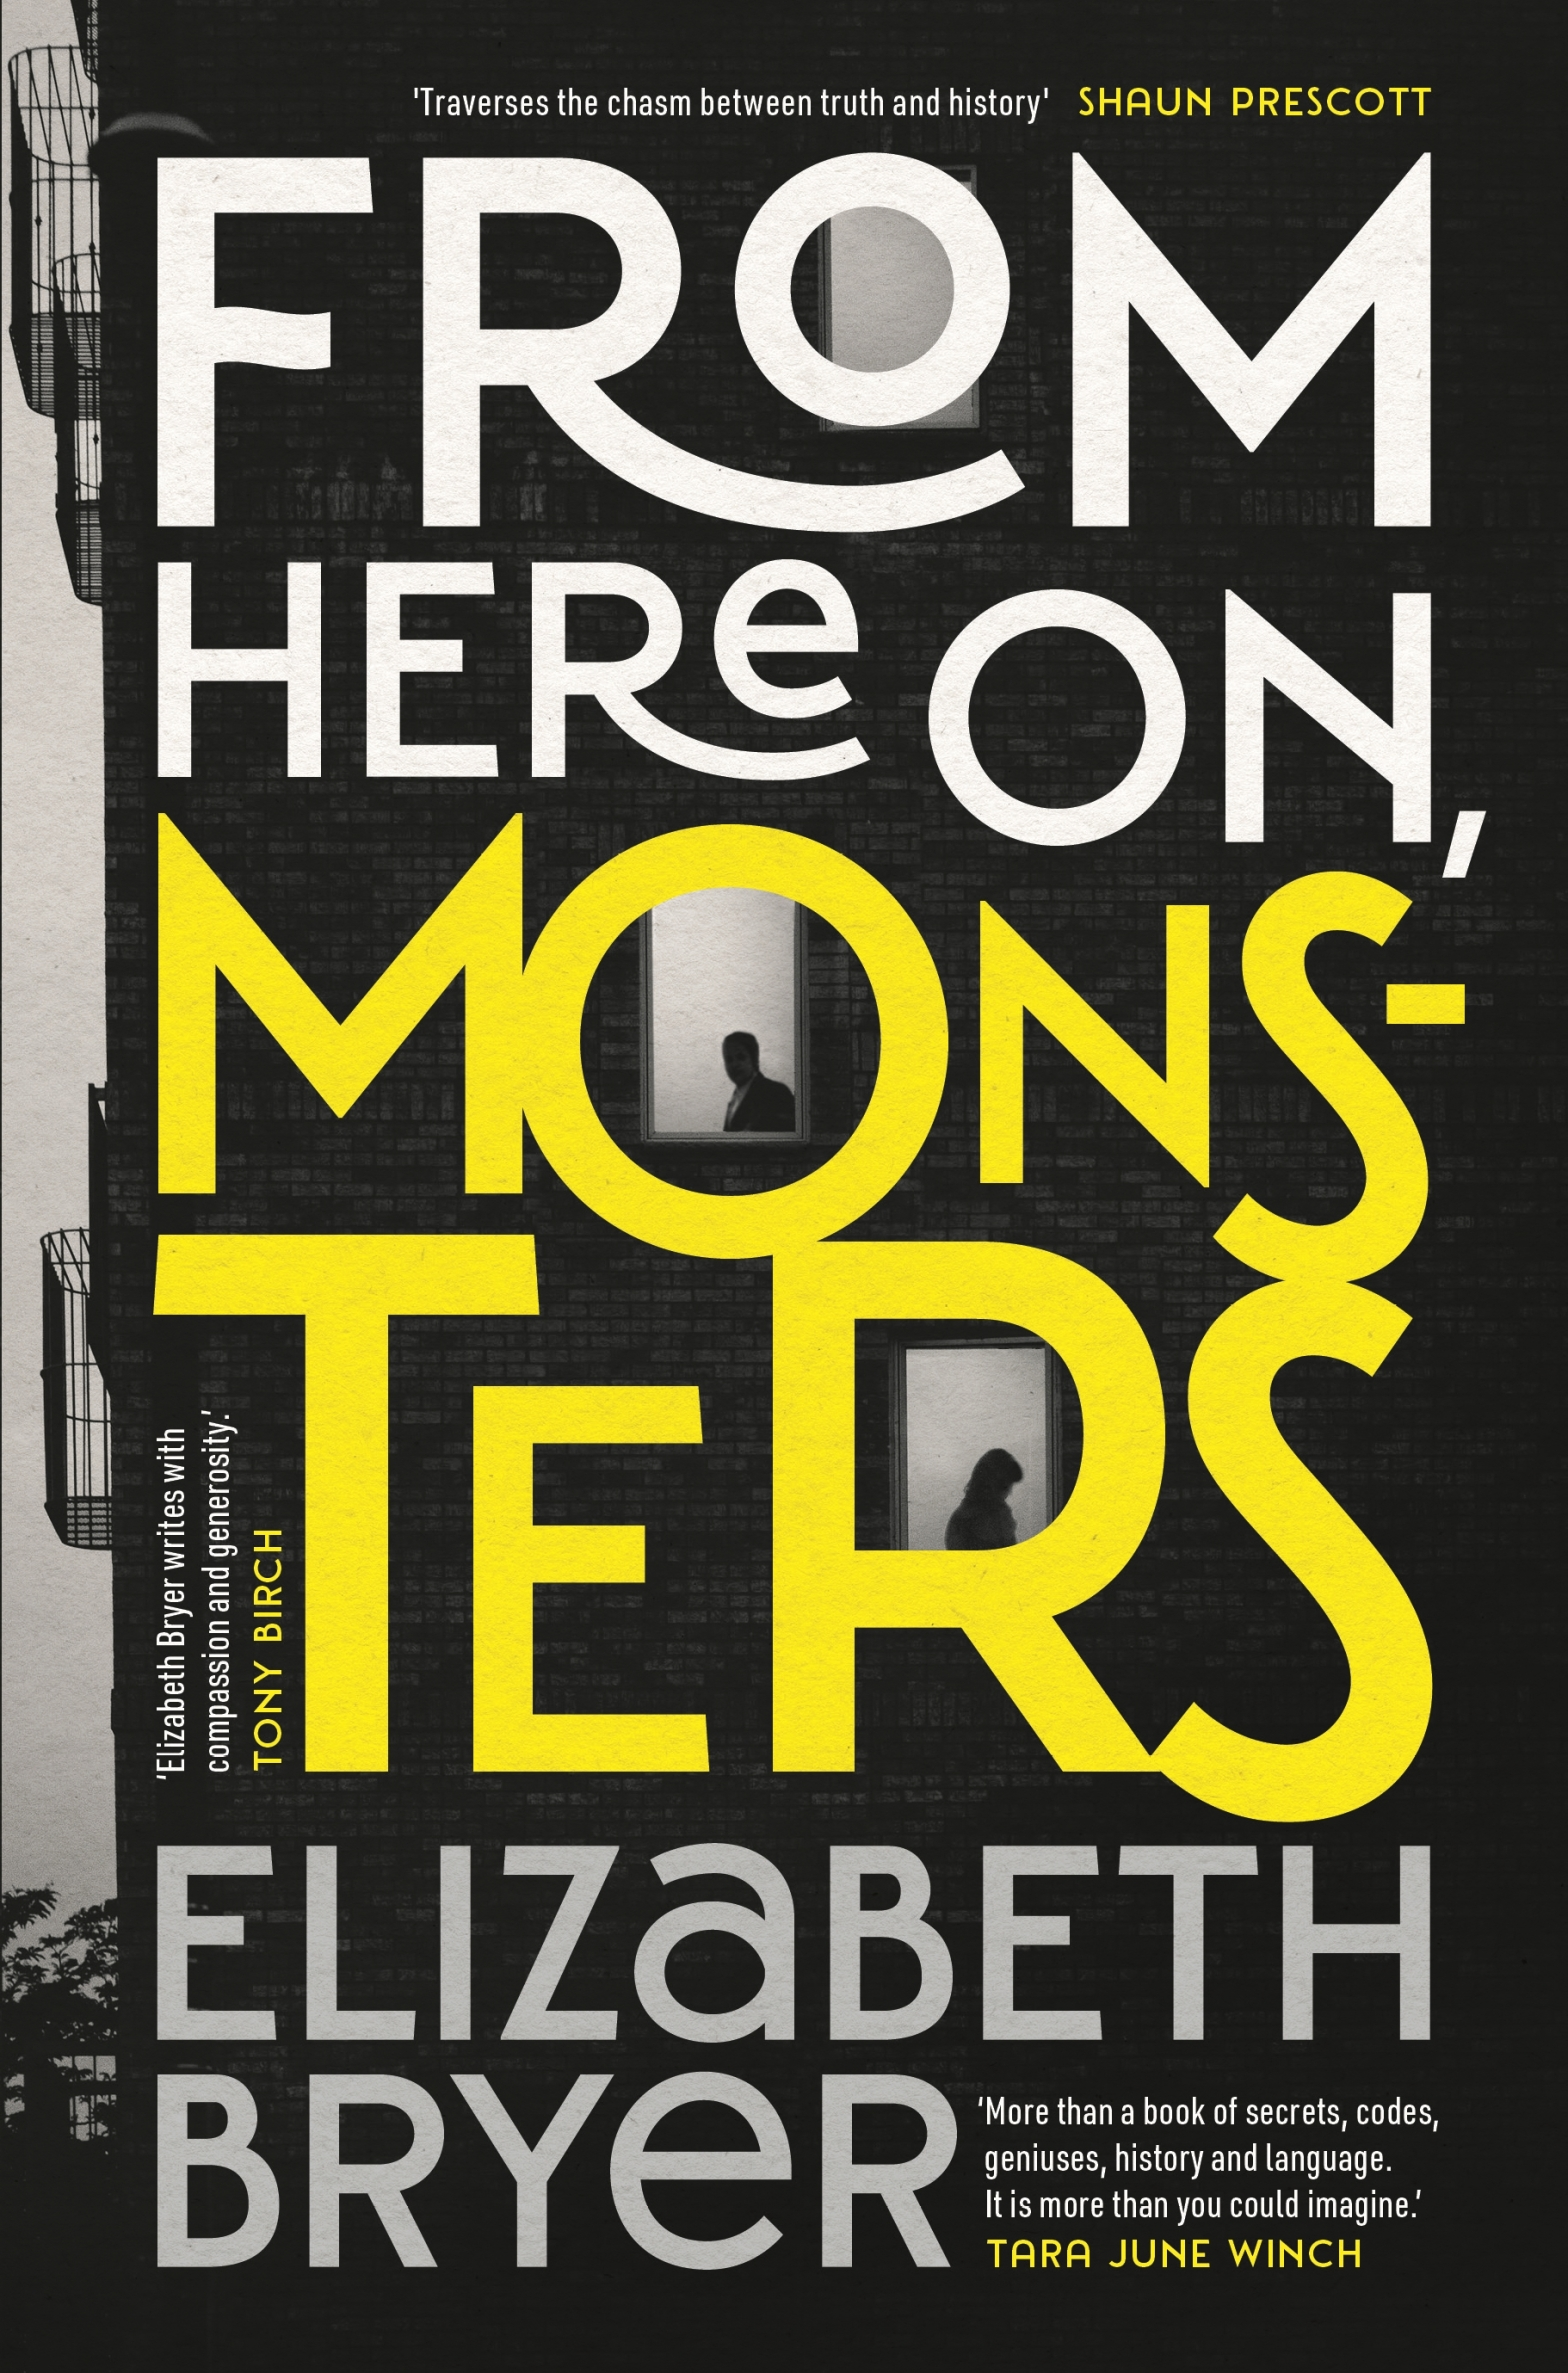 https://www.readings.com.au/products/27755960/from-here-on-monsters